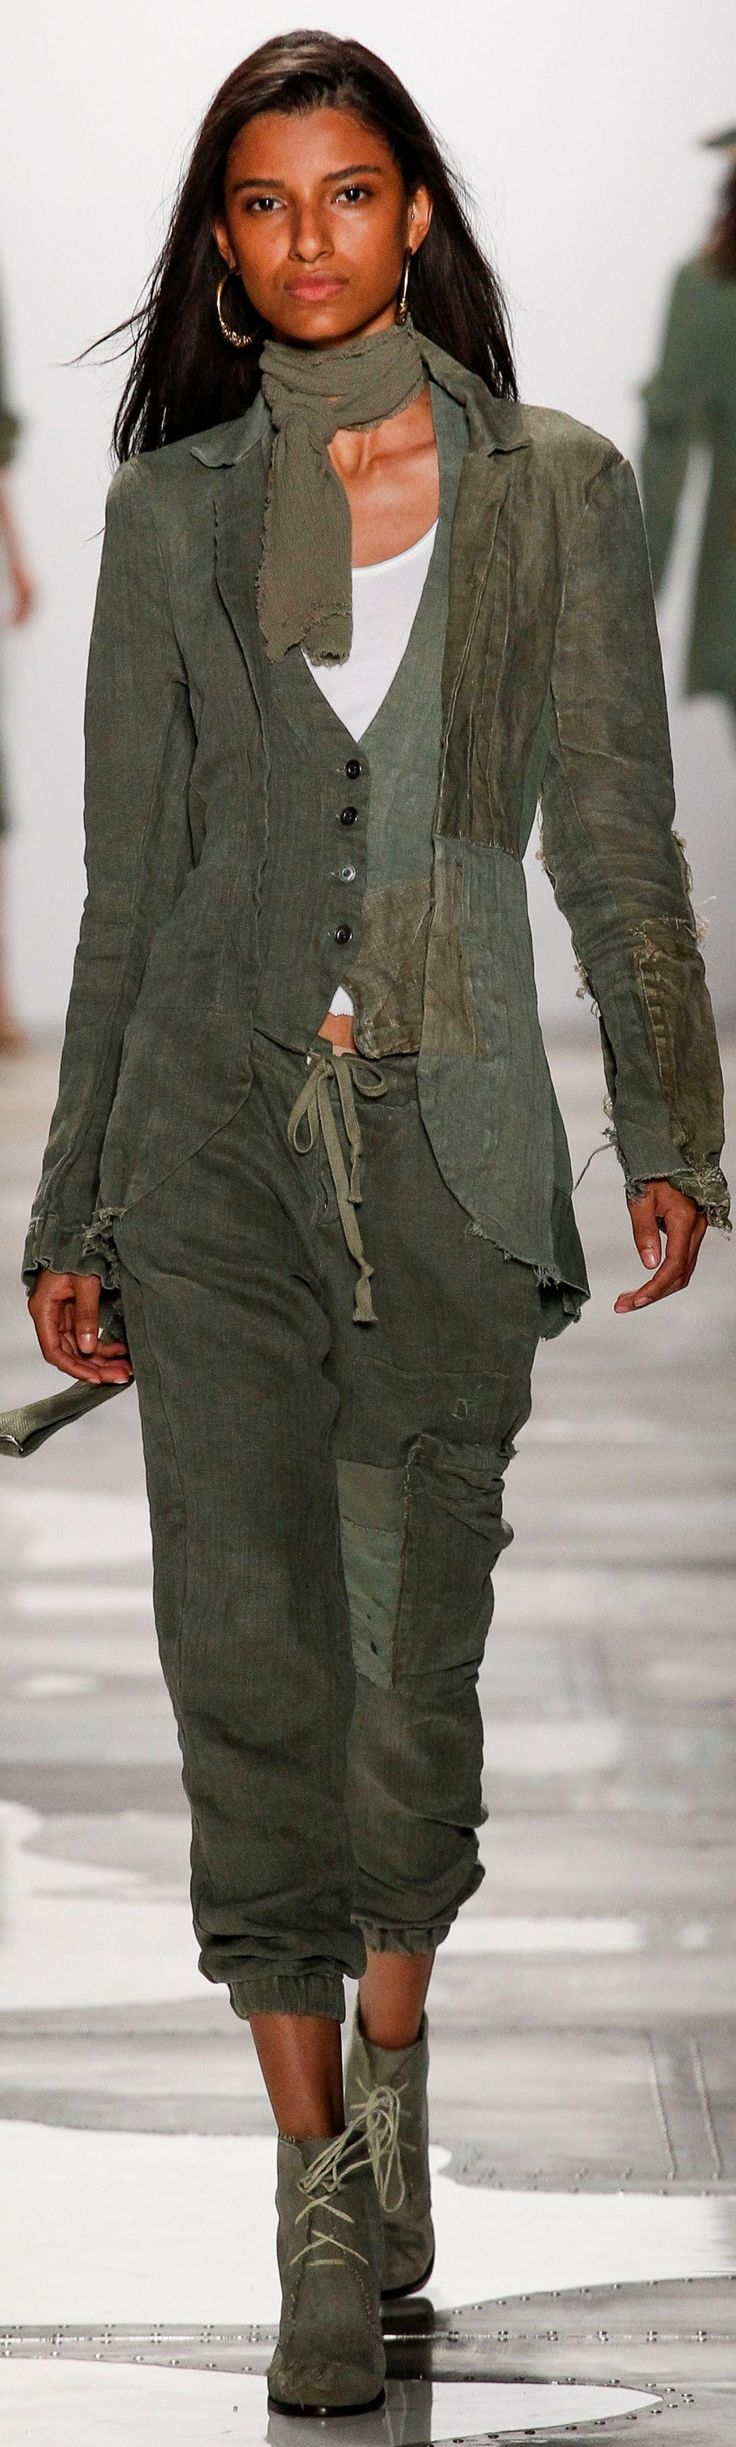 Greg Lauren Goes Military Chic for Spring